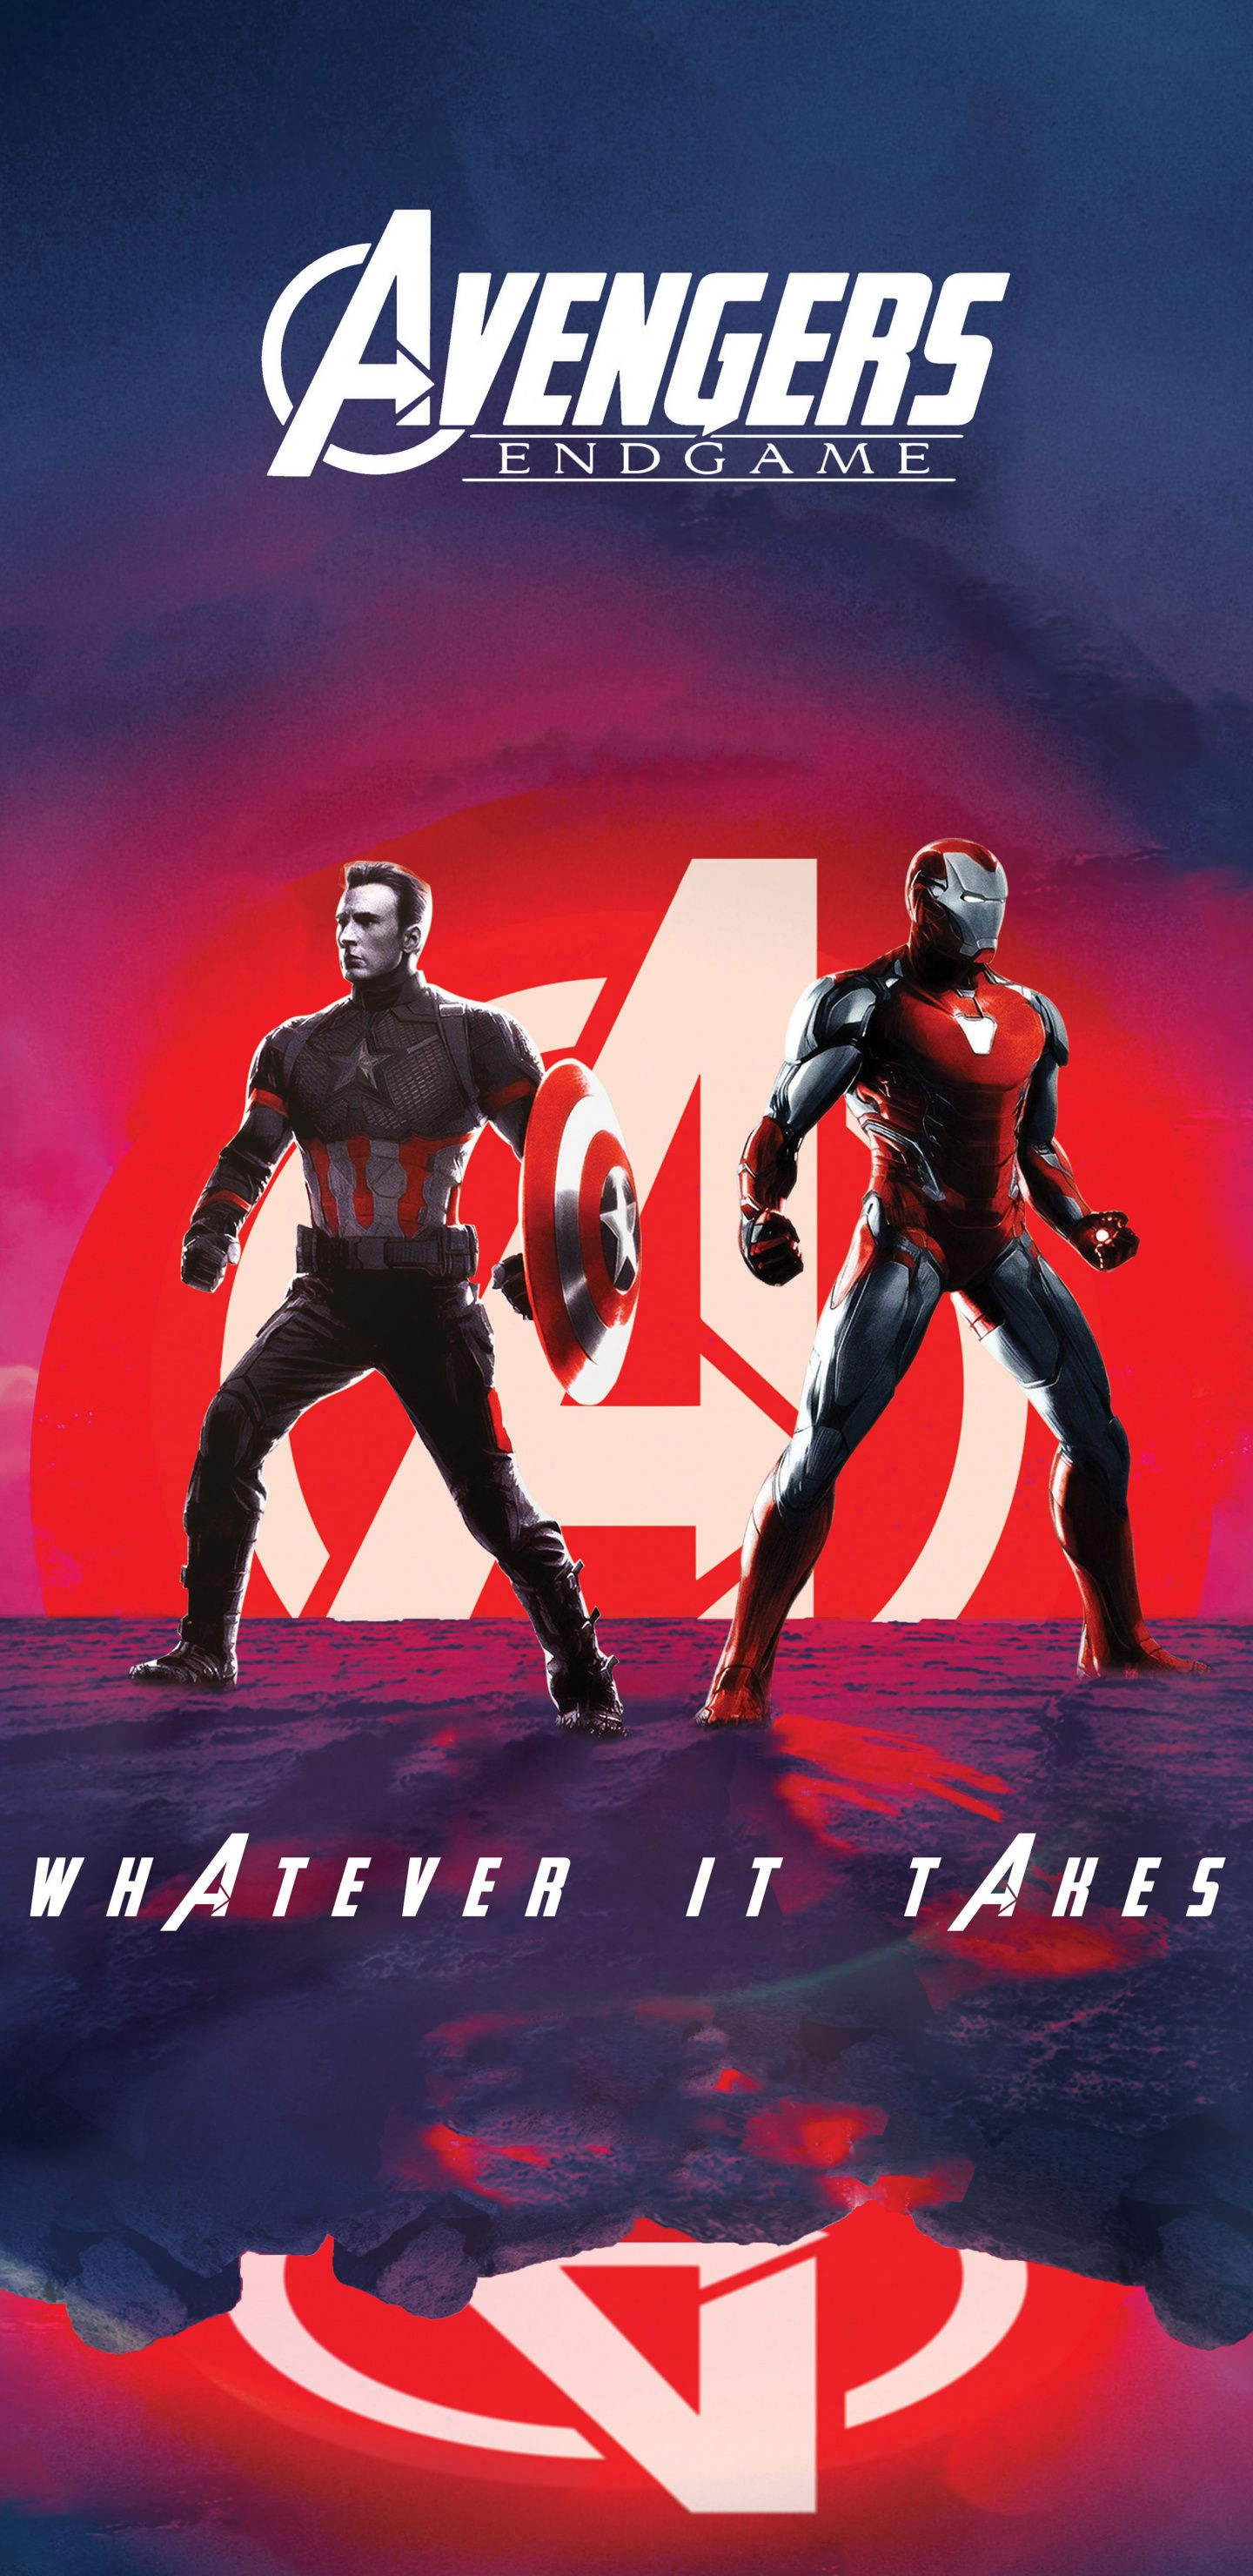 1440x2960 Captain America Iron Man Avengers Endgame